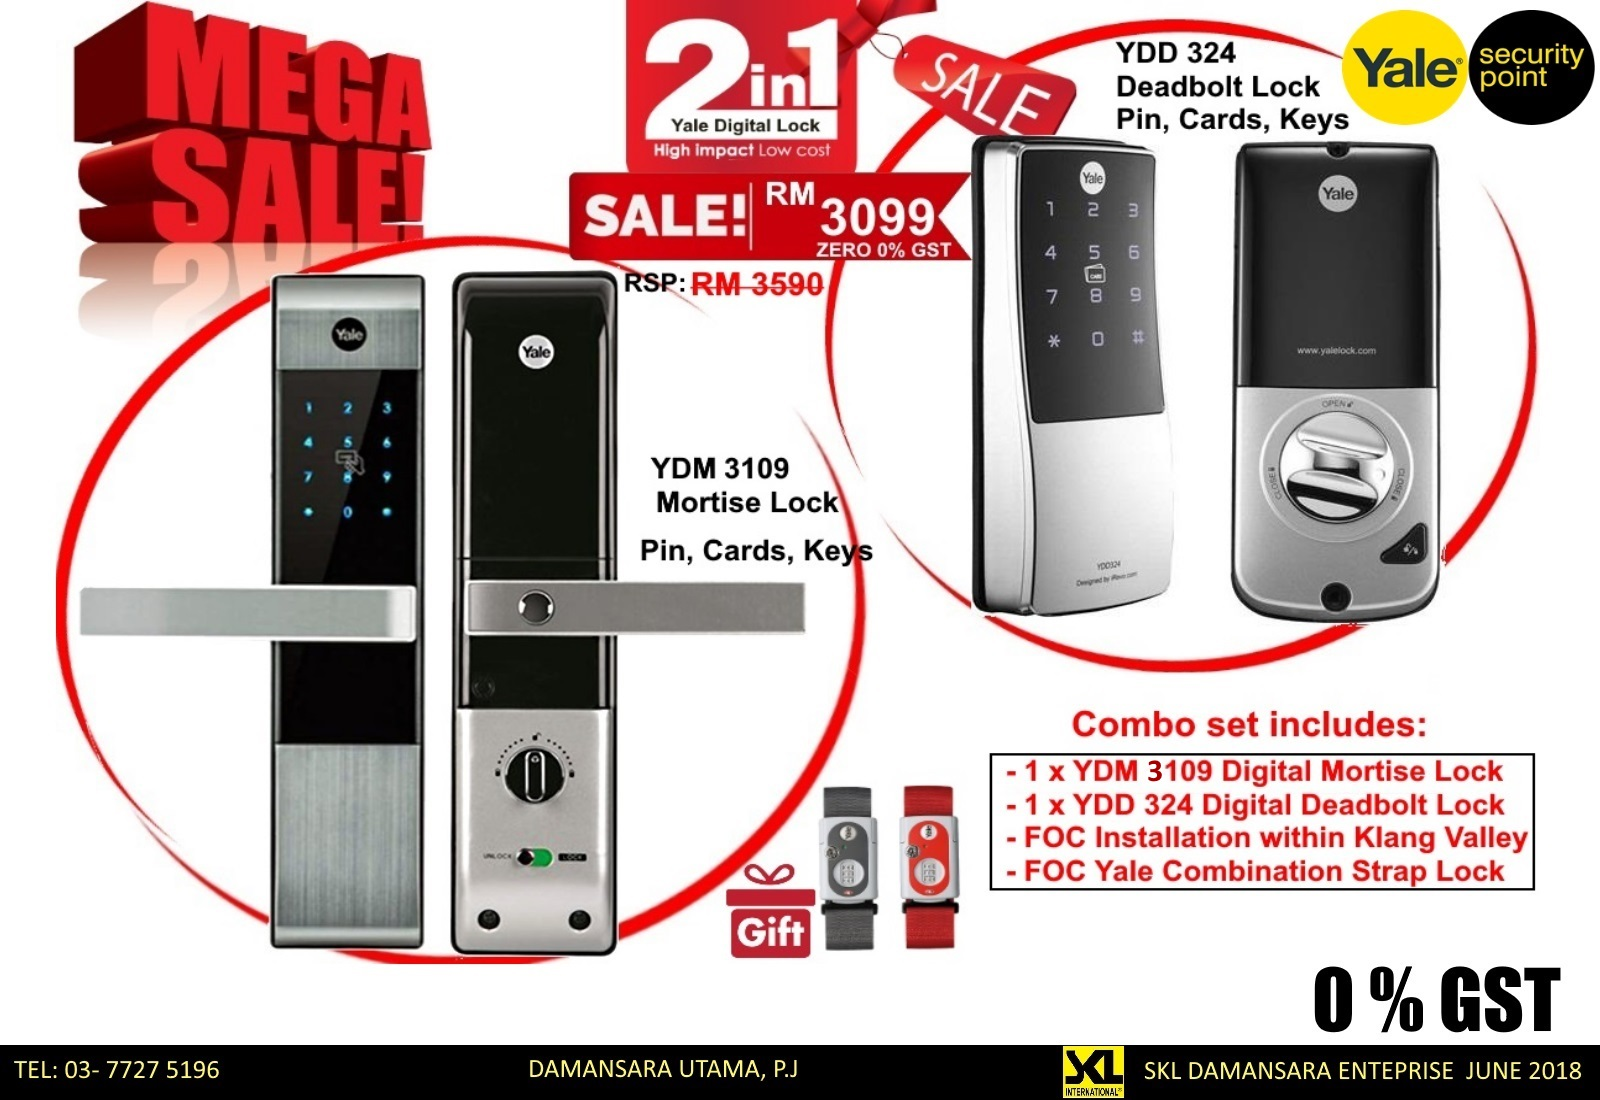 Zero GST Mega Saver!!! Get a Yale YDM3109 & YDD 324 combo for only RM 3099 instead of RM 3590.